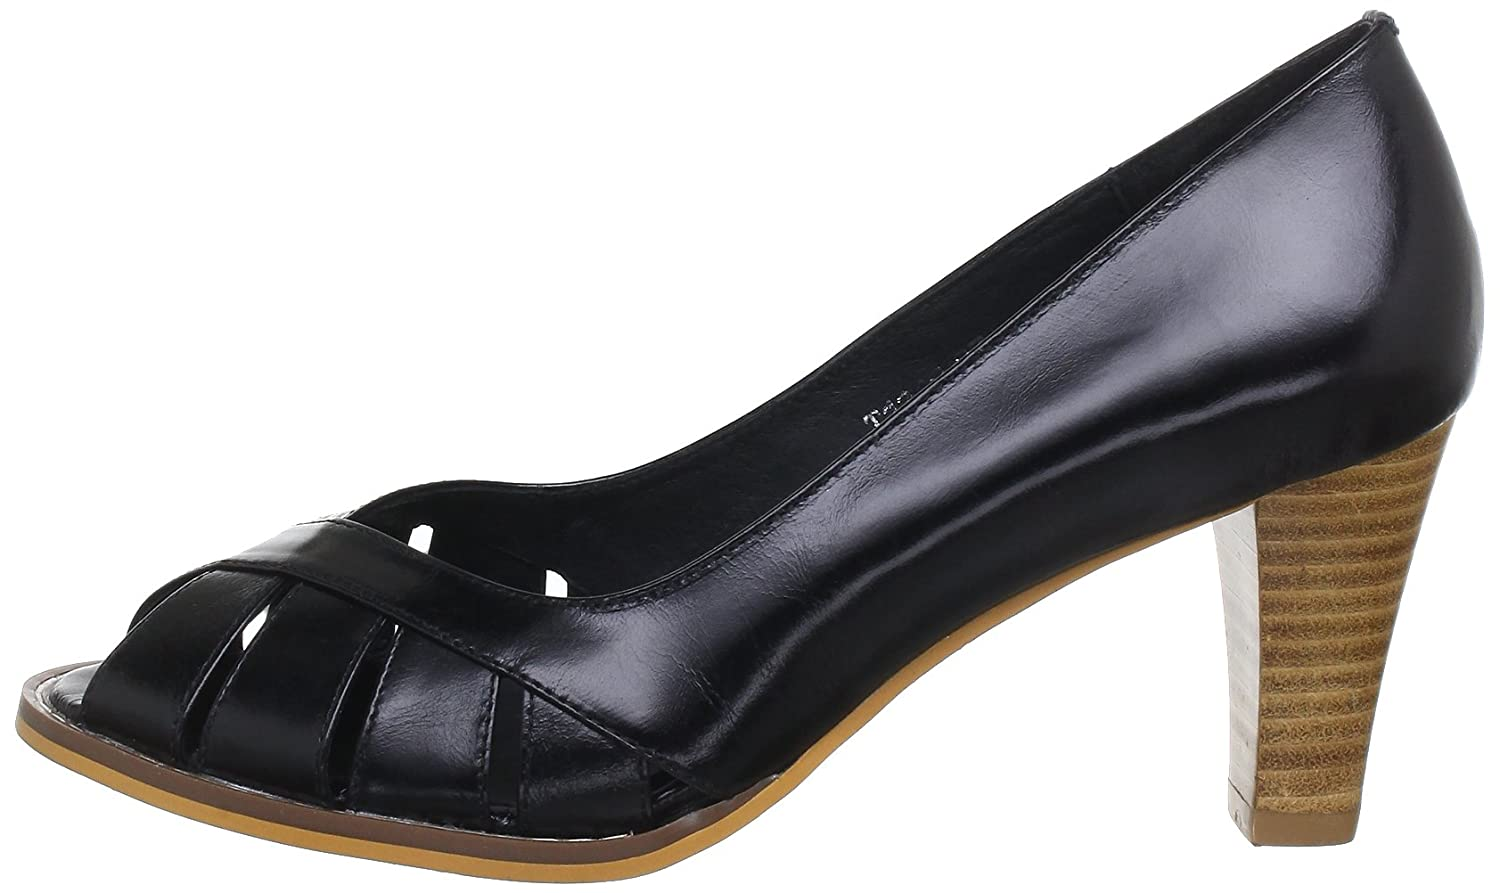 Sofie Schnoor Horse Oil Leather Open Toe T134C Damen Damen Damen Pumps 0be137